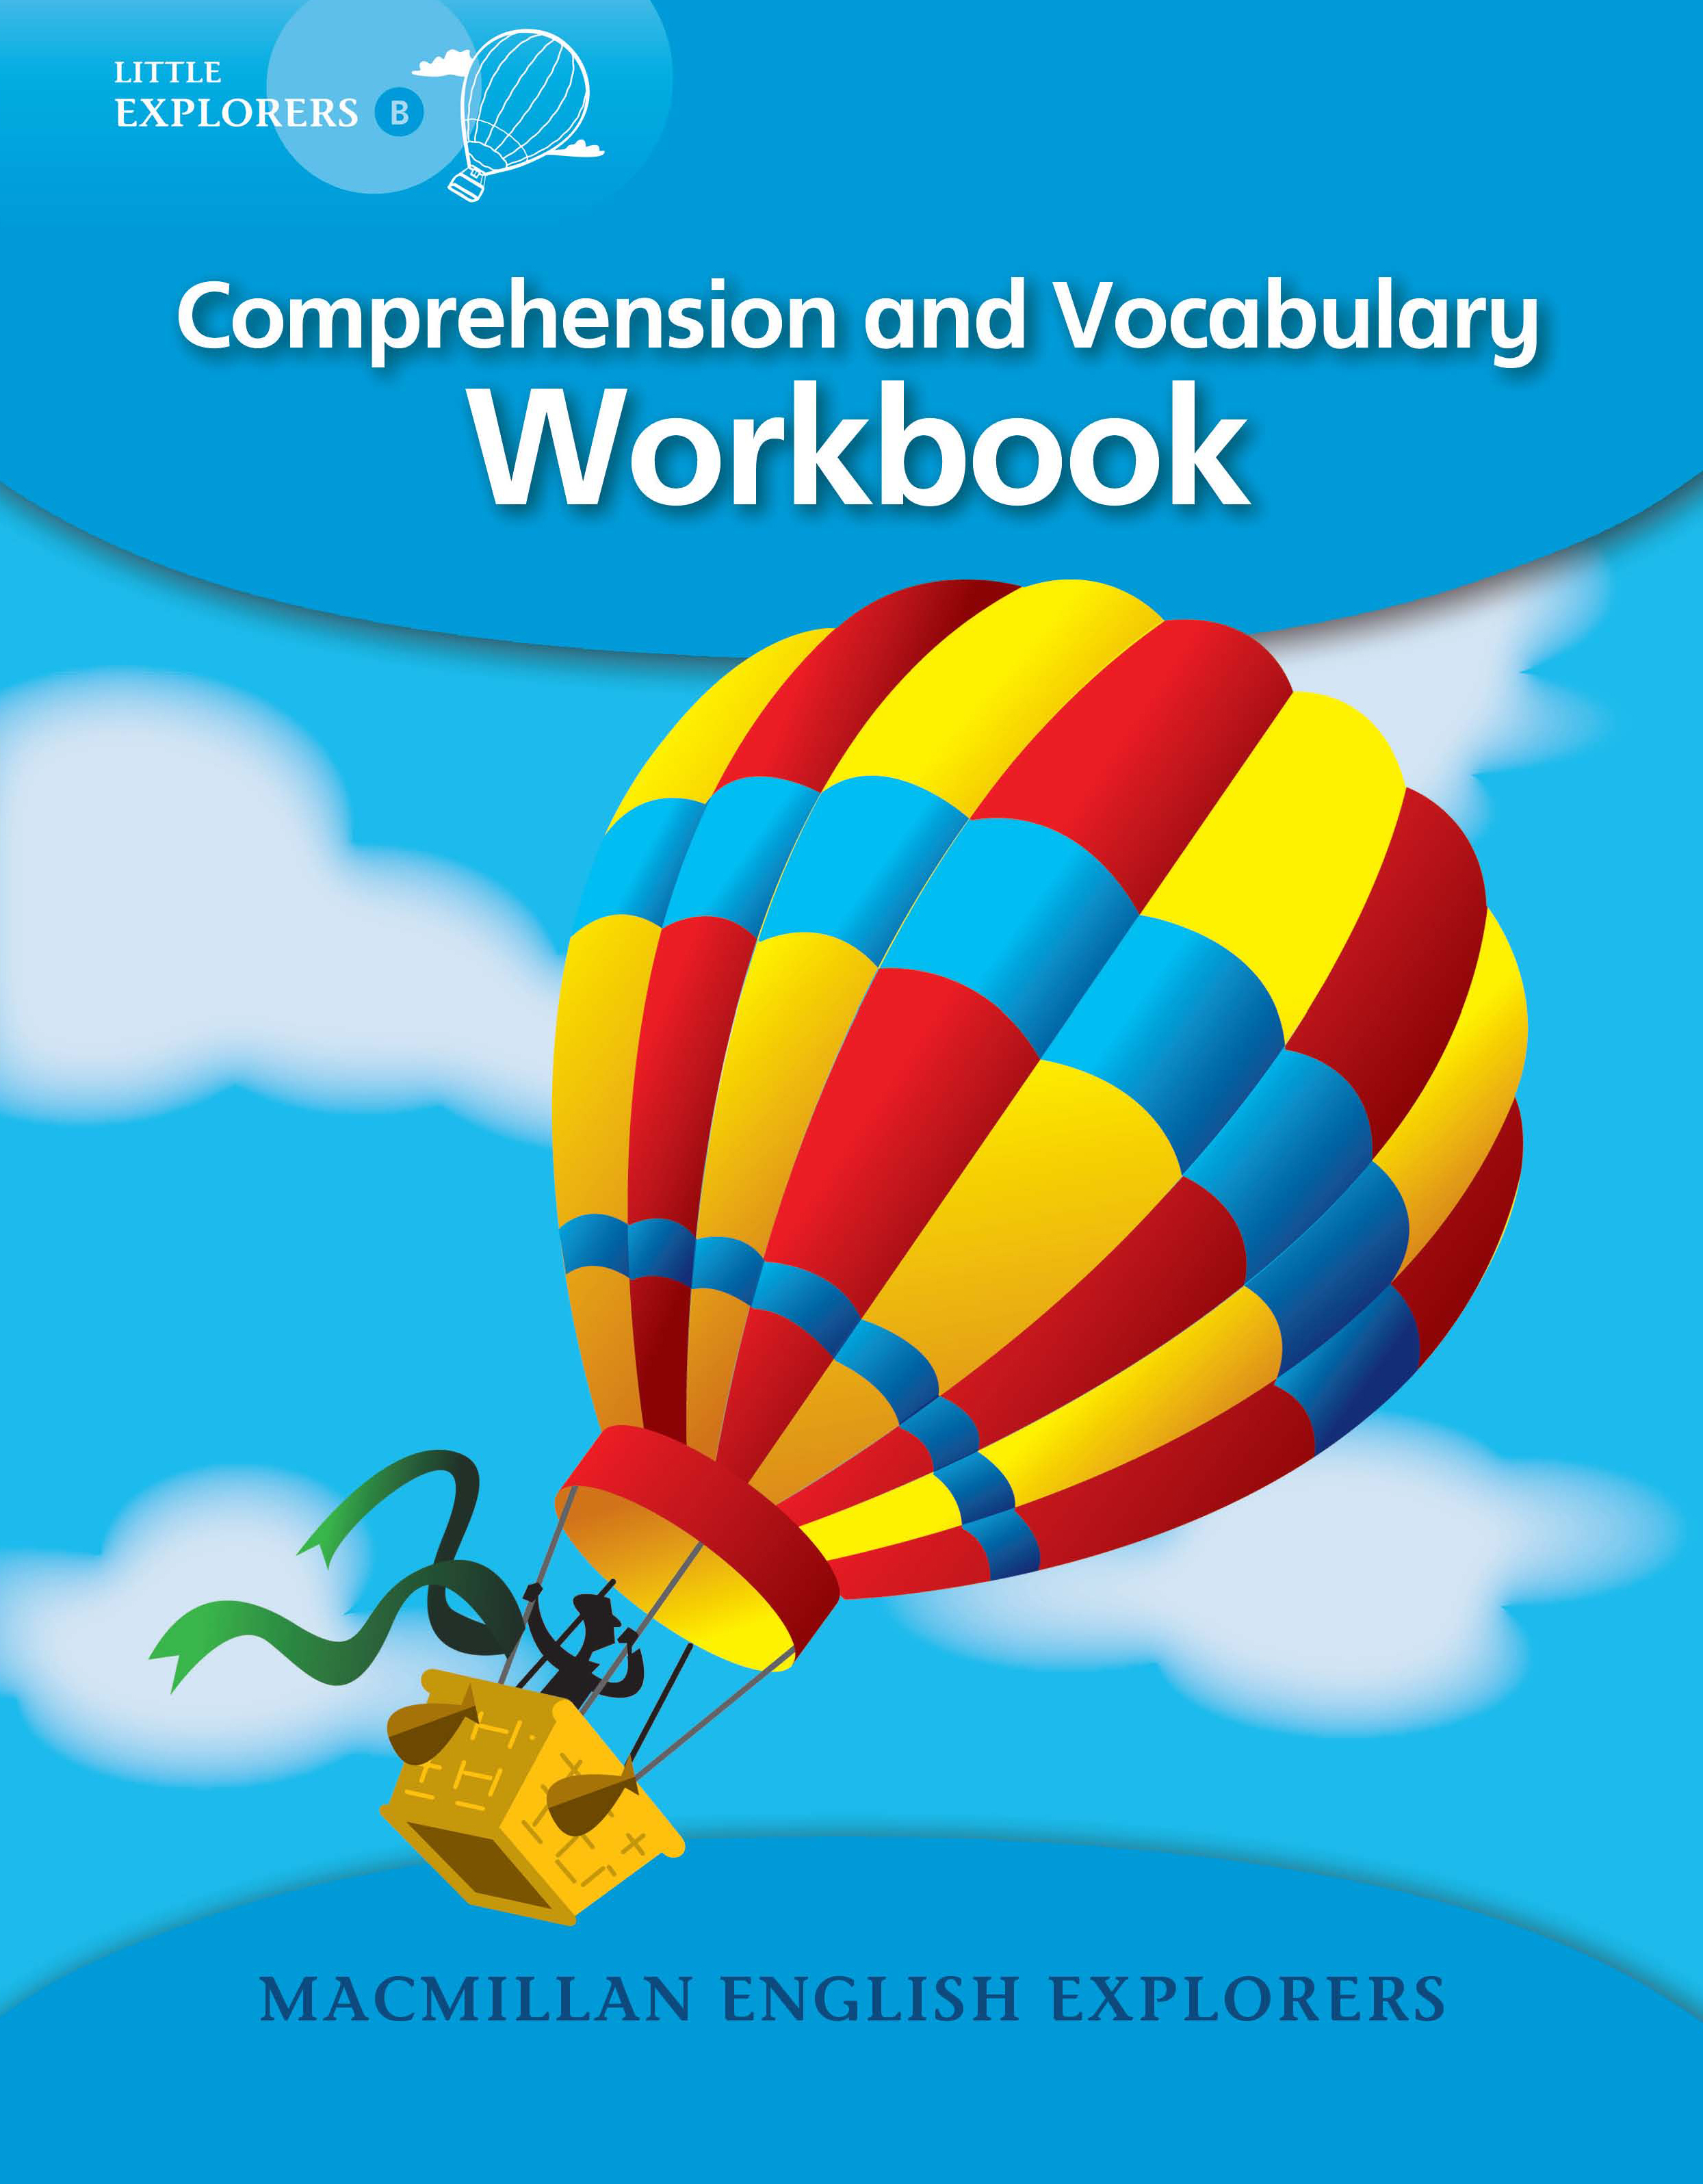 Little Explorers B: Comprehension Workbook